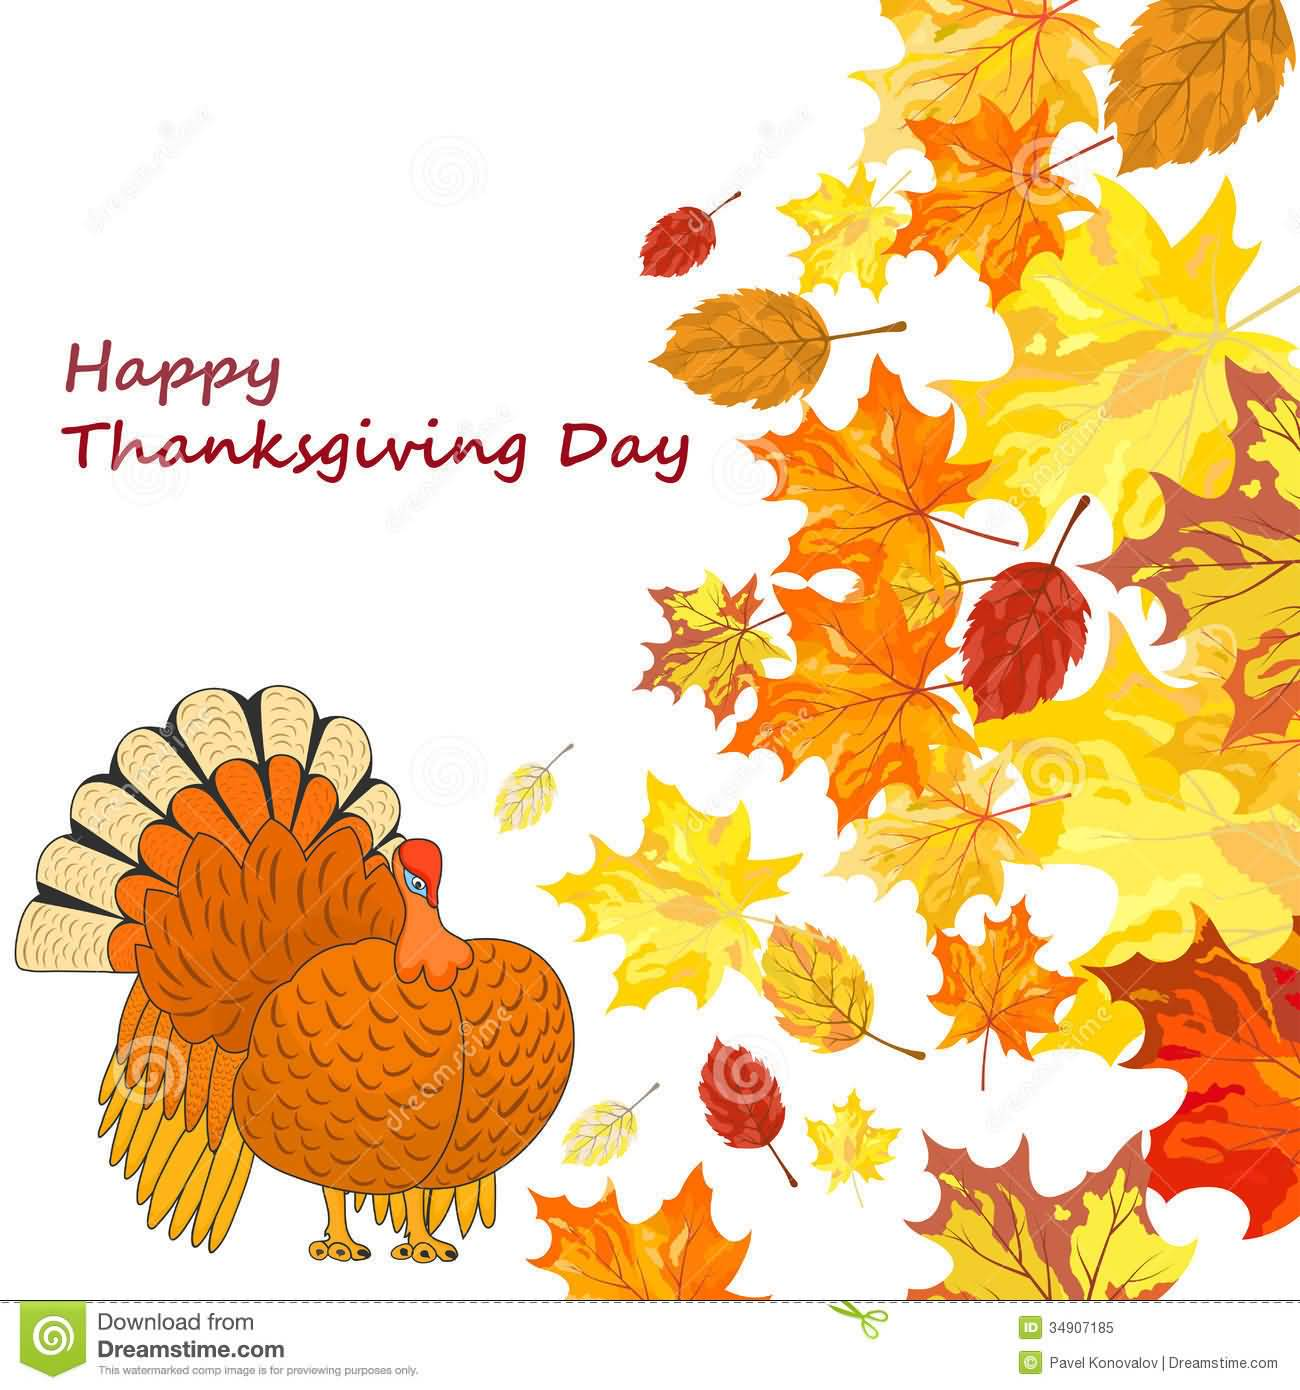 55 Latest Happy Thanksgiving Day 2016 Greeting Pictures And Images